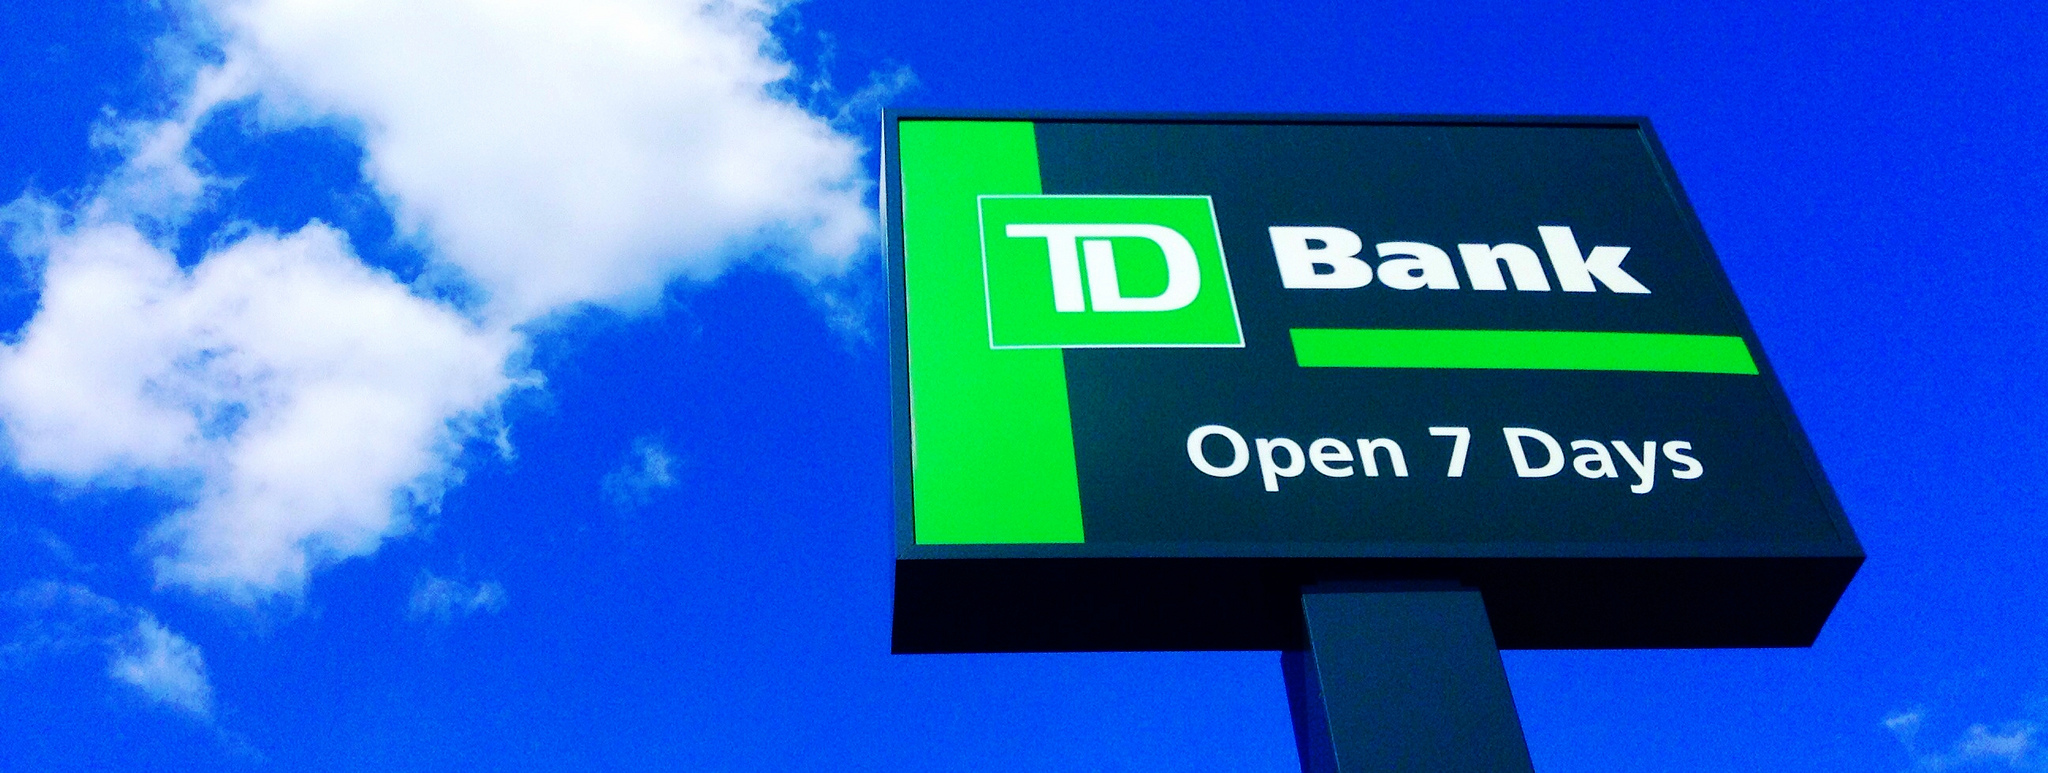 TD Bank Customers Feel It